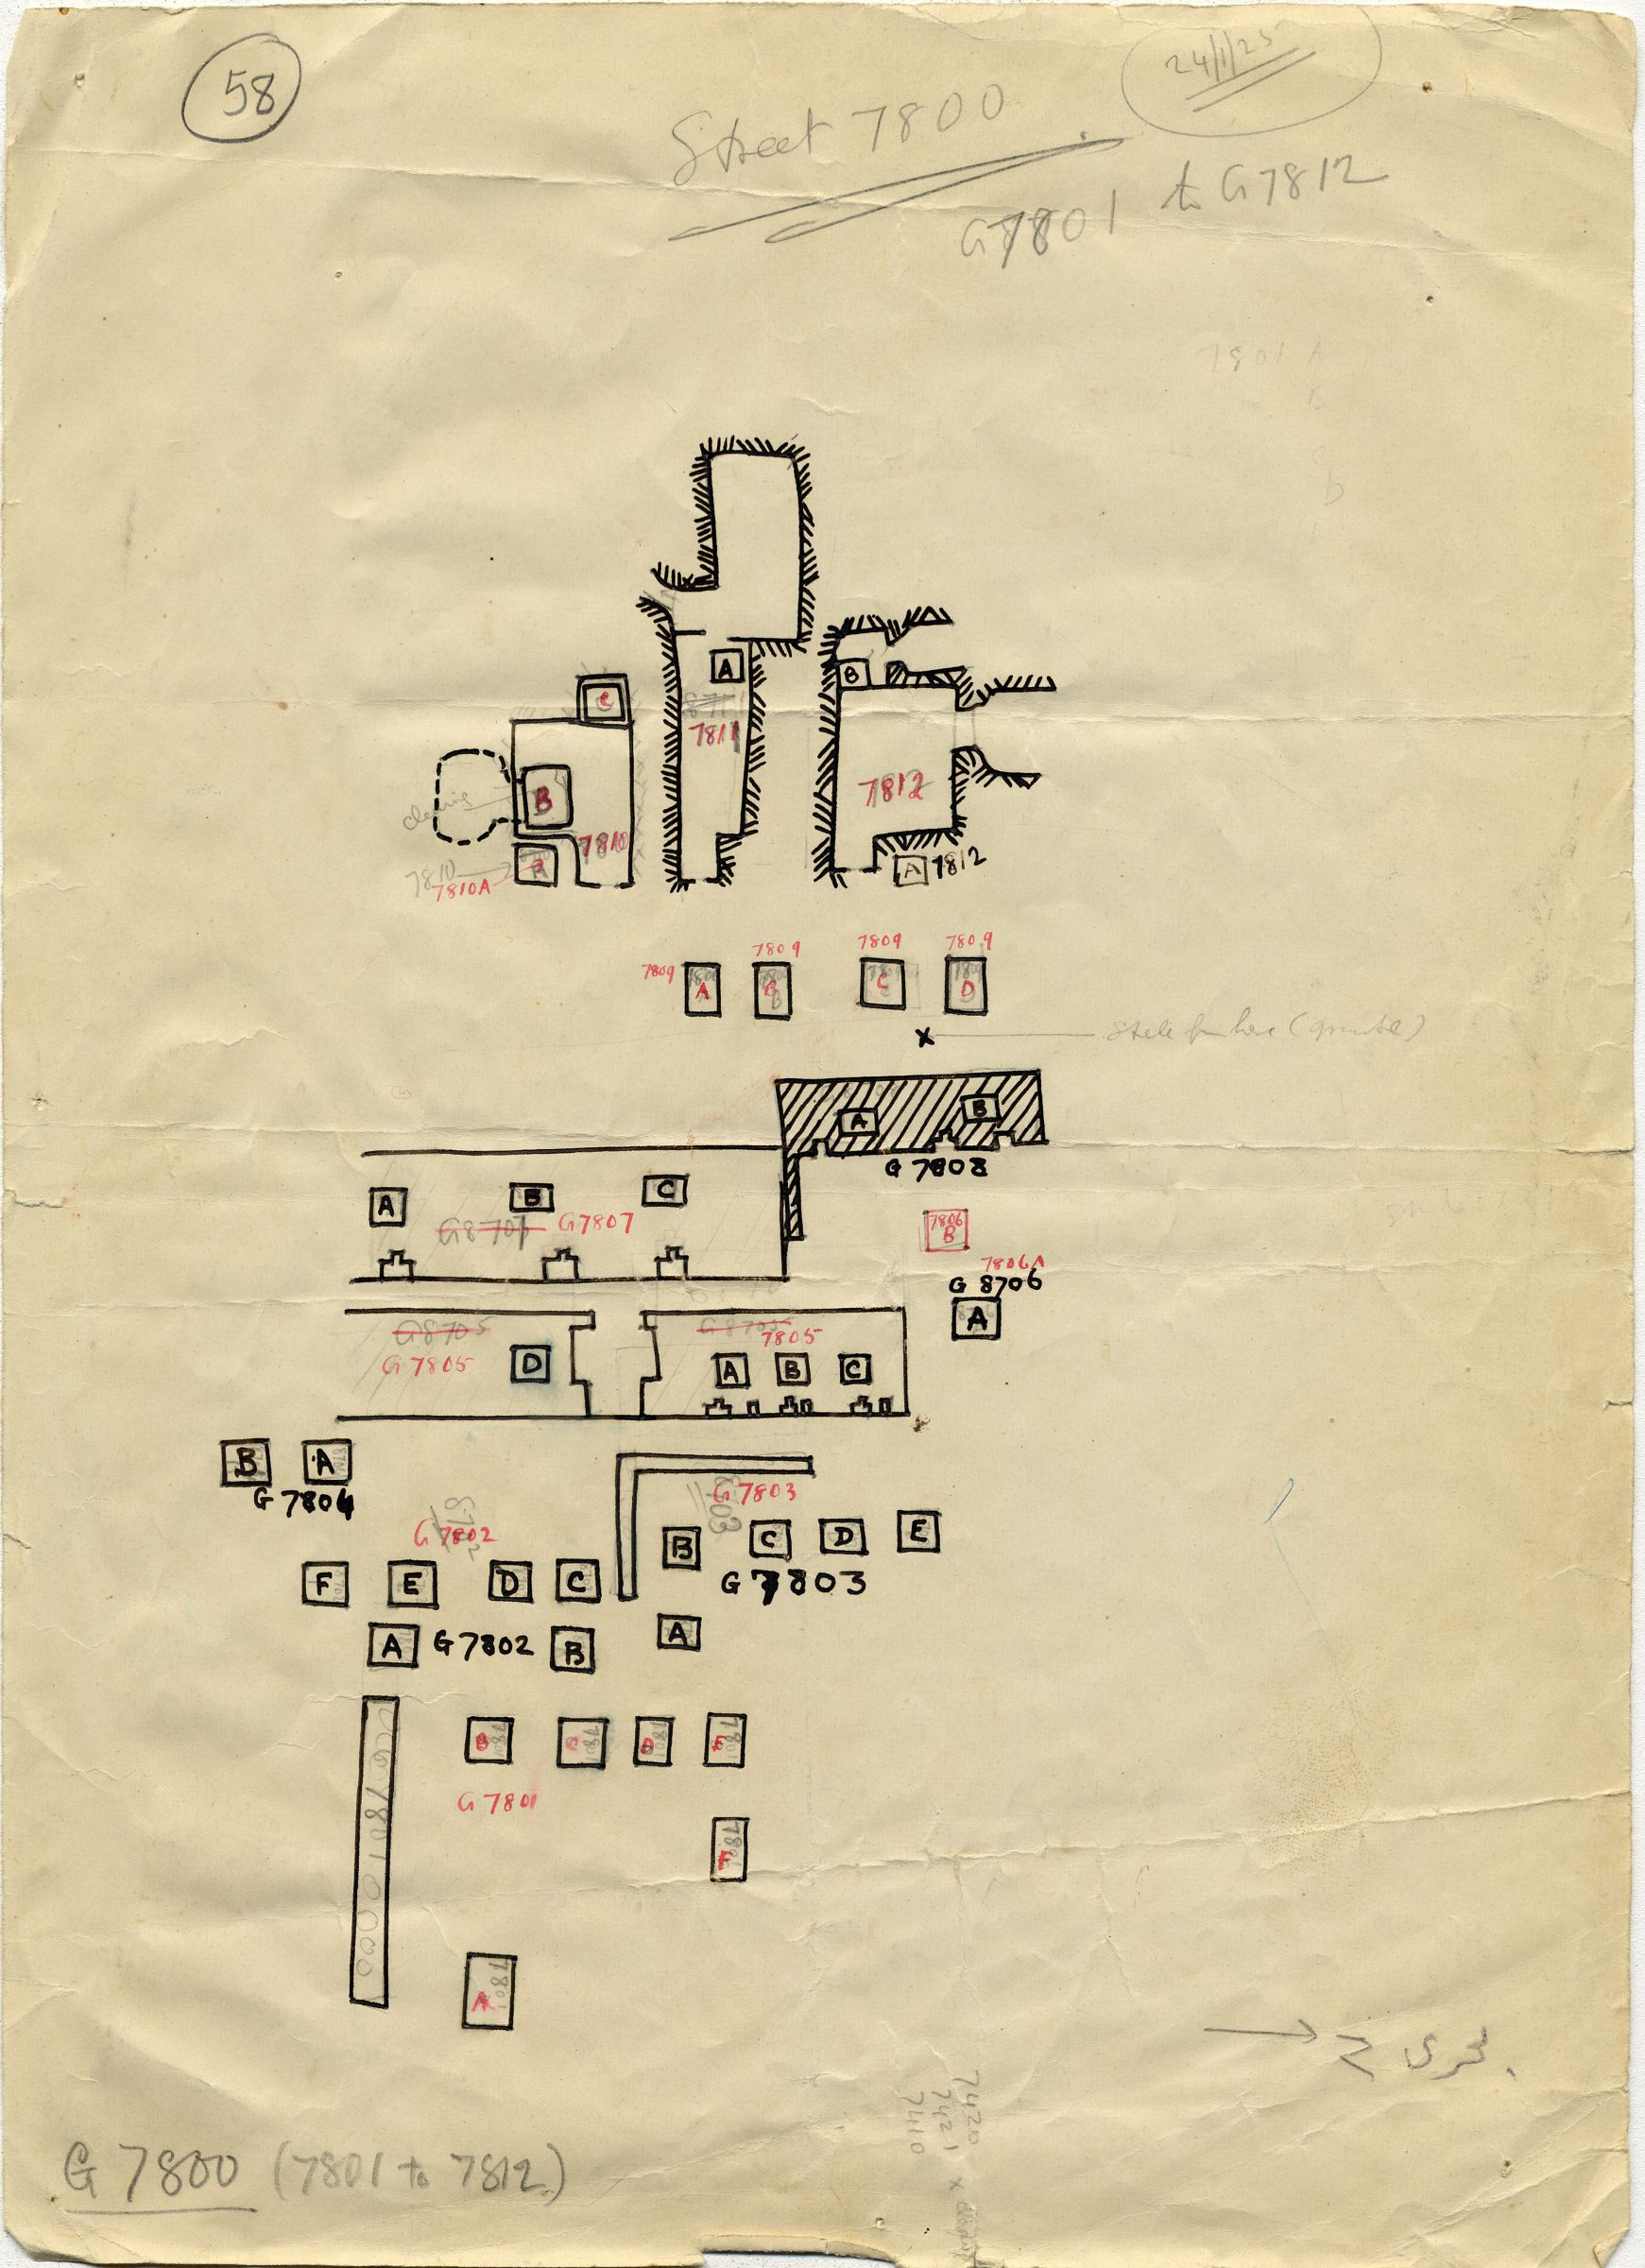 Maps and plans: Plan of cemetery G 7000: G 7800s (rough draft)